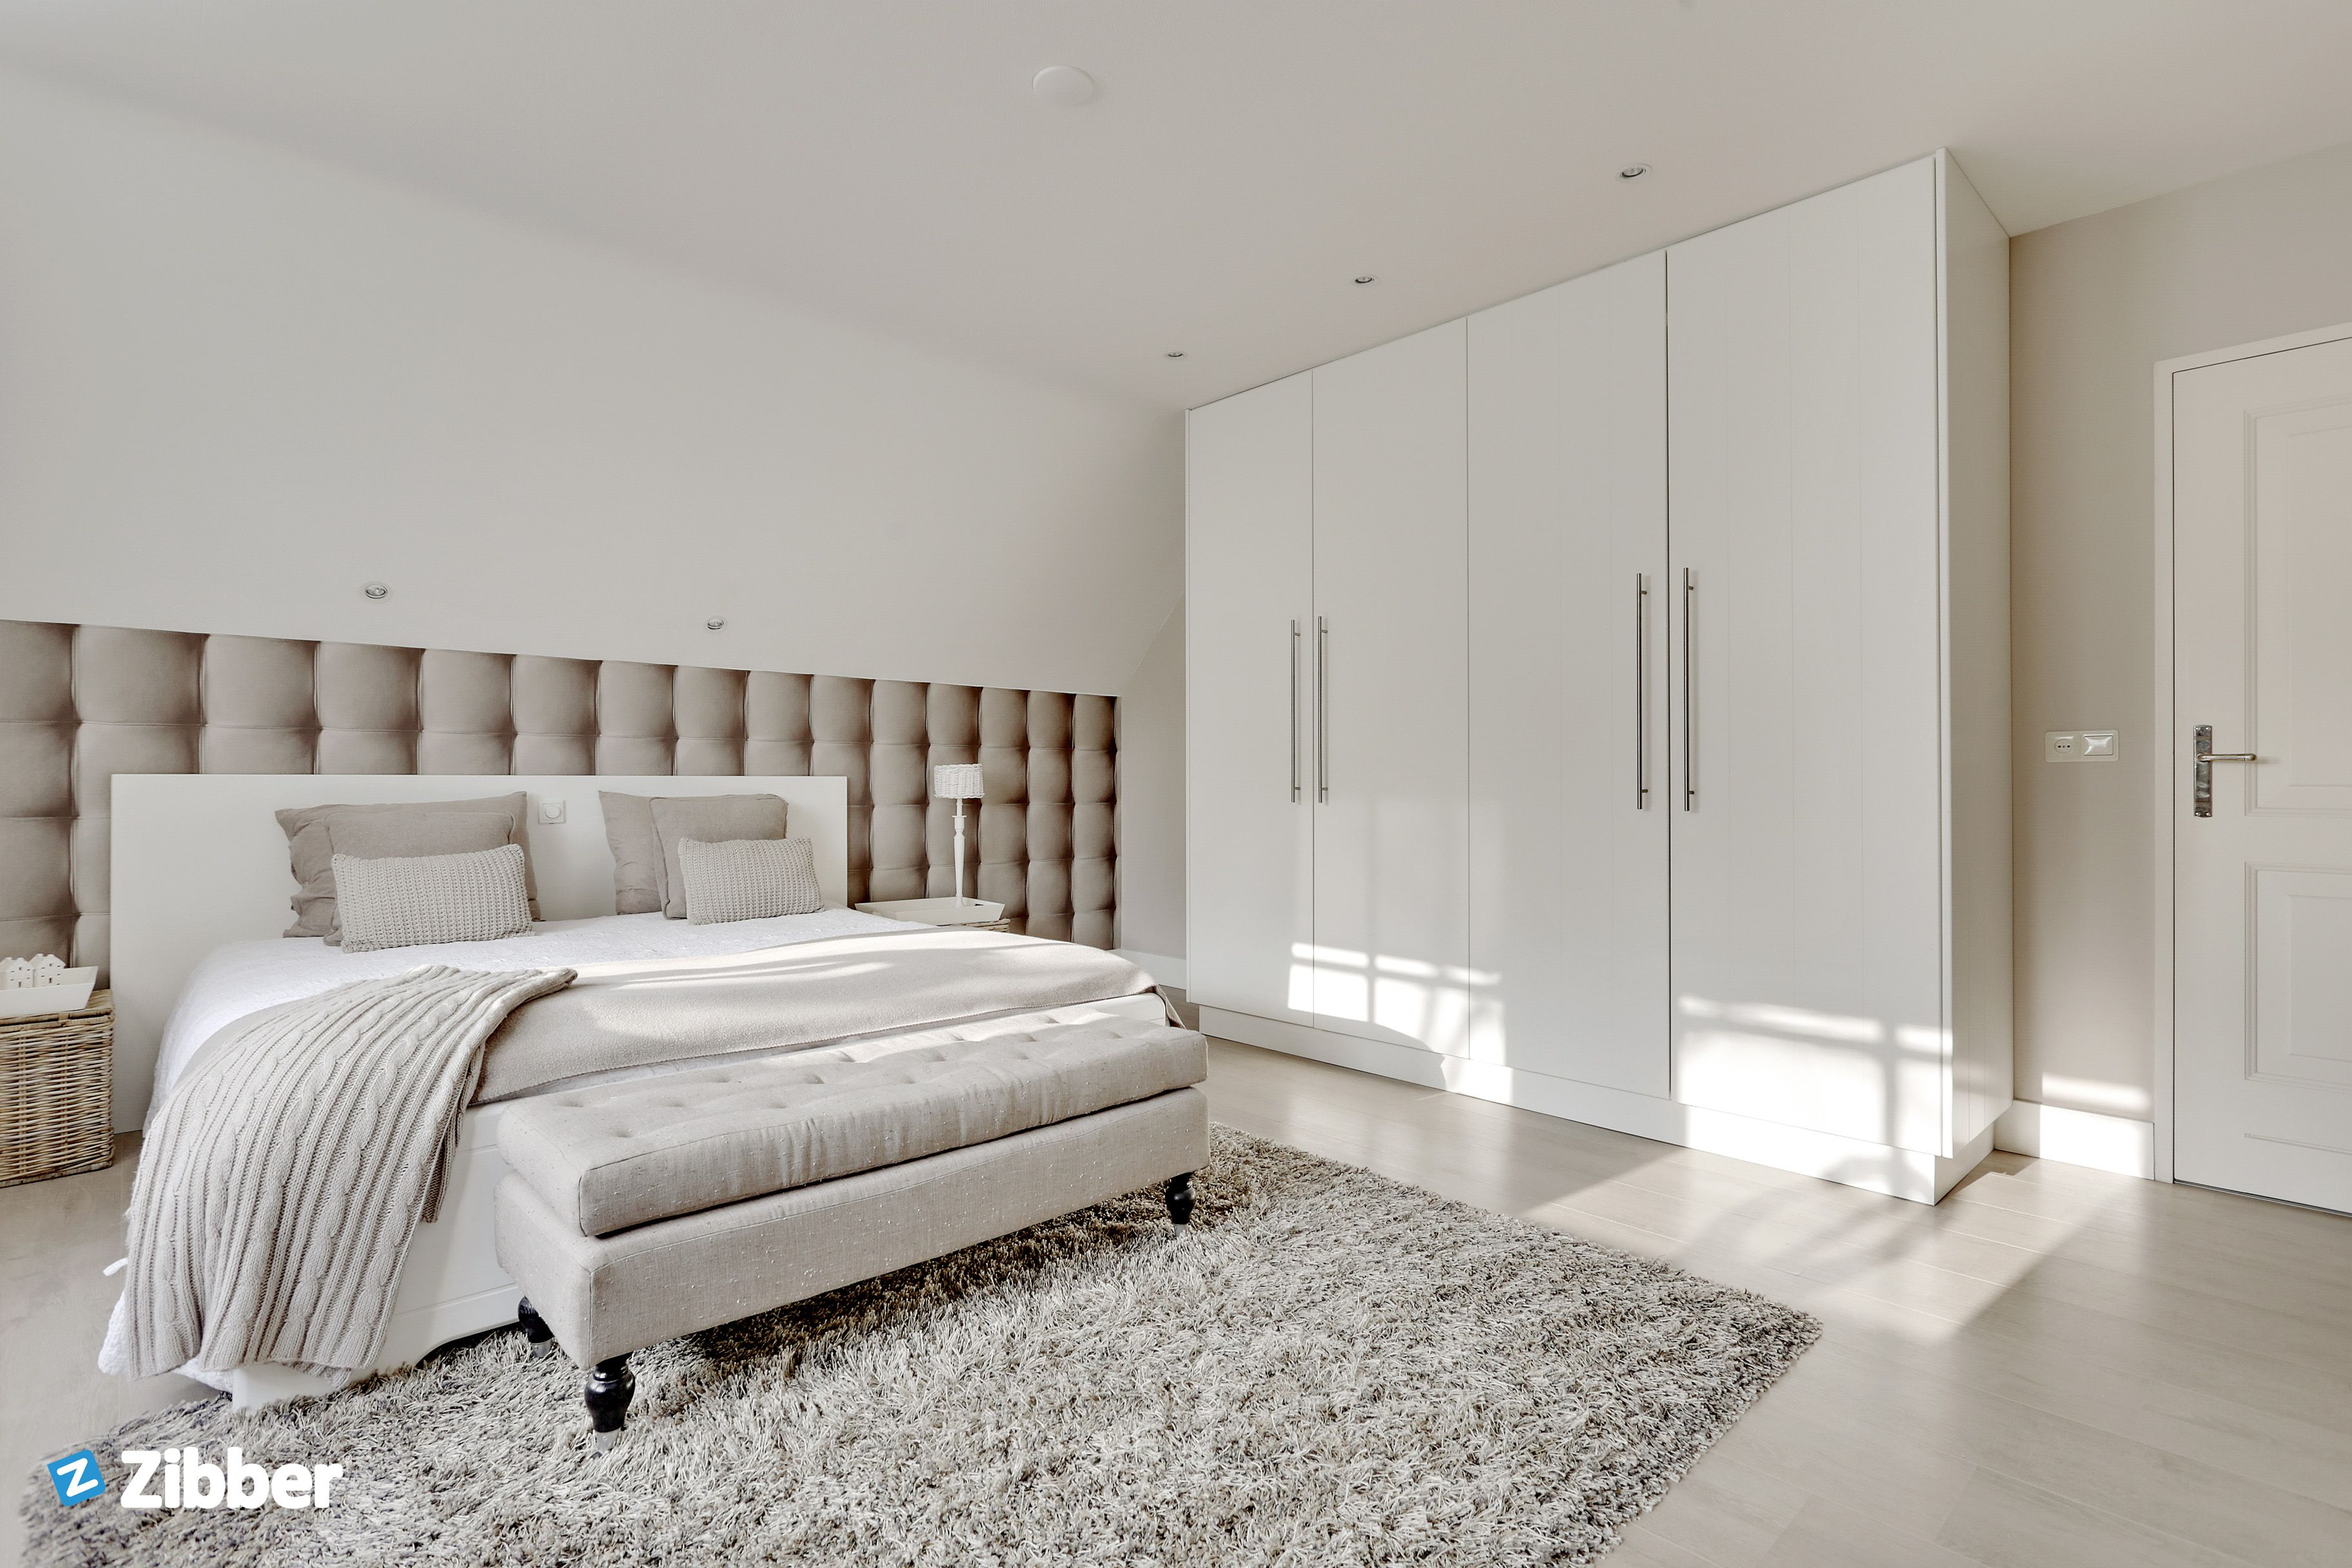 Soft tones and wide space l Zibber